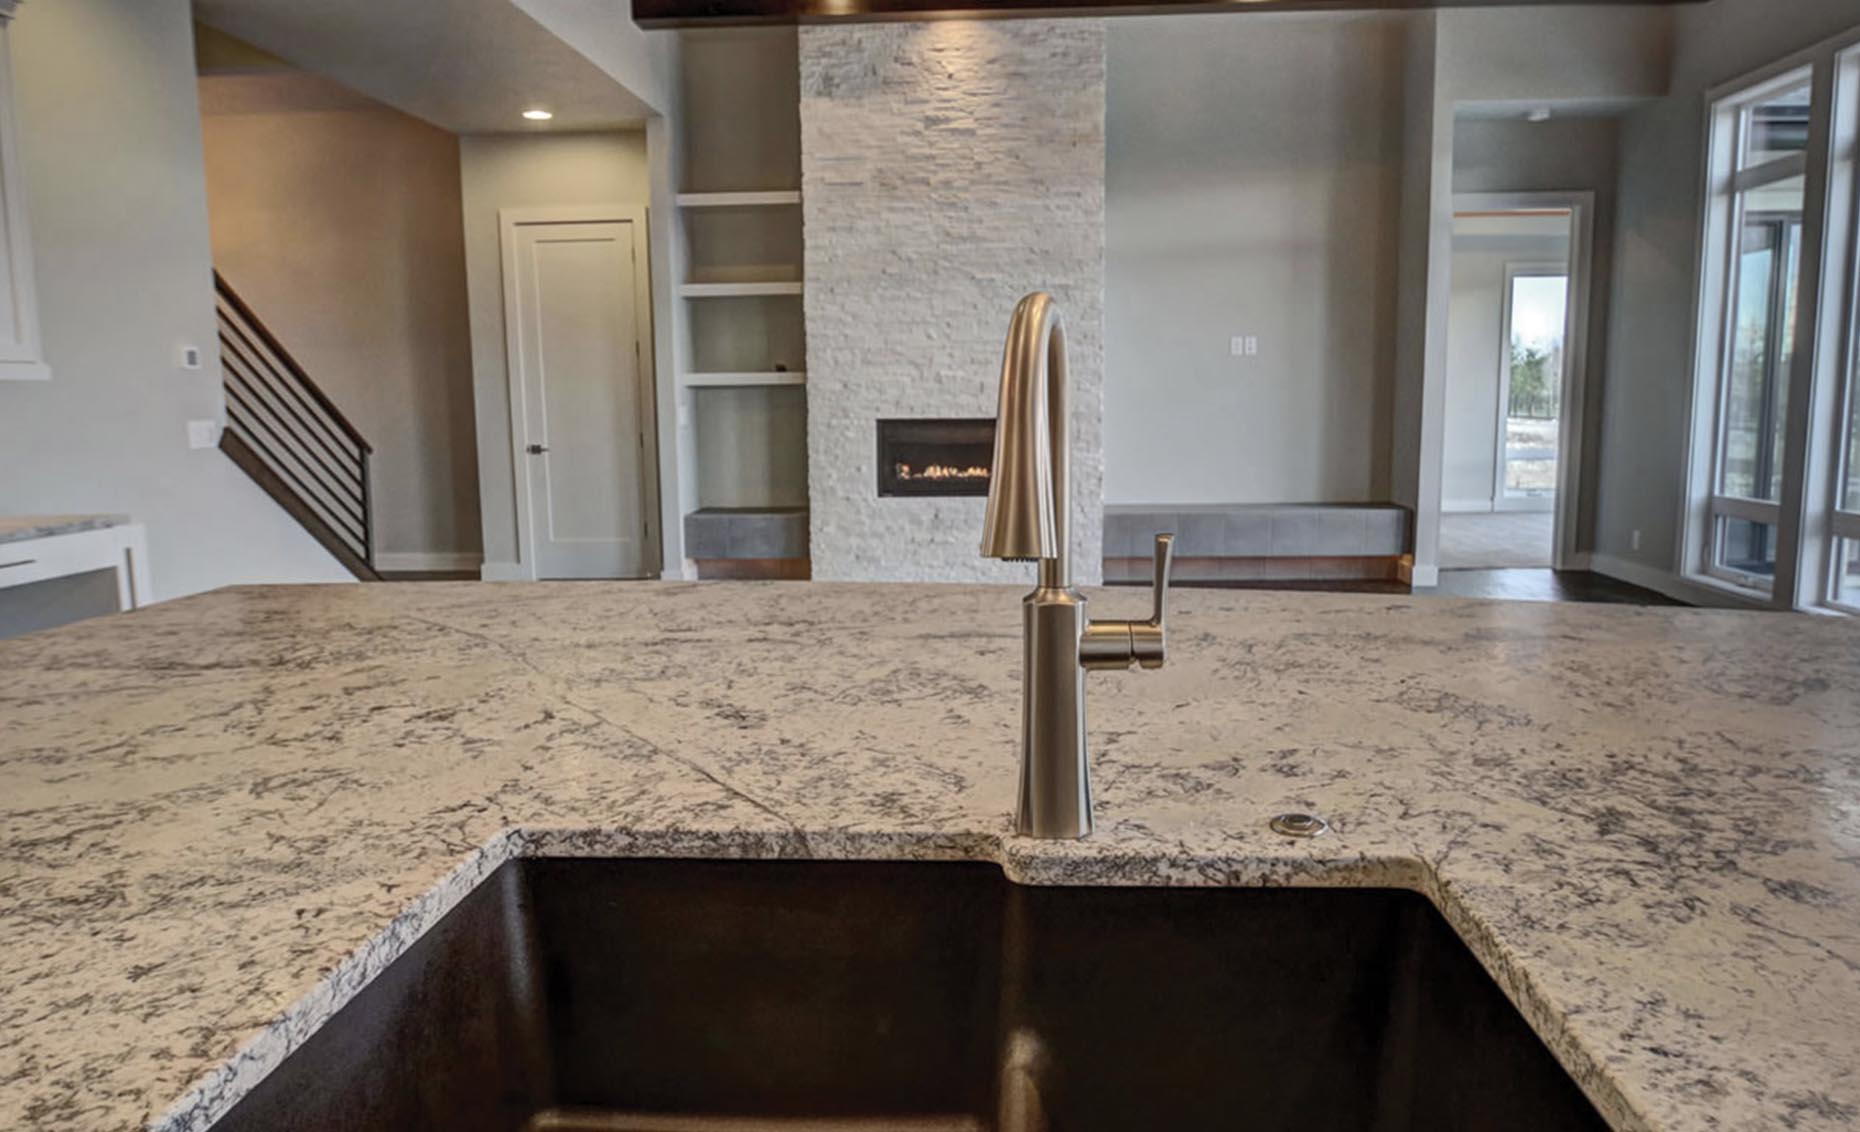 The Windbreaker House Kitchen Island Sink